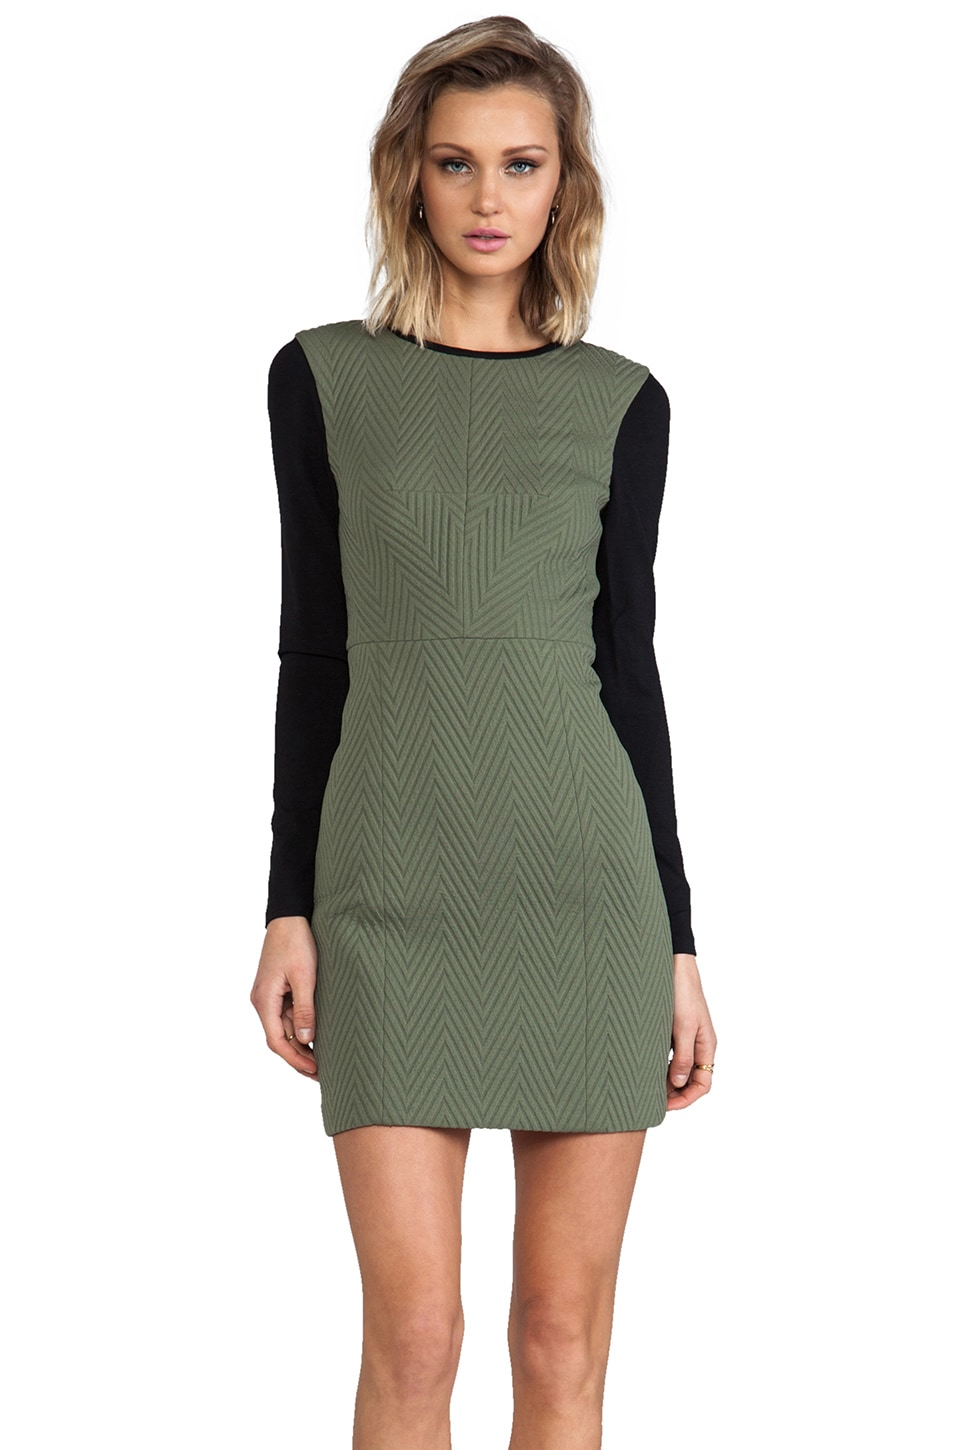 Tibi Quilted Zig Zag Fitted Dress in Olive/Black Multi